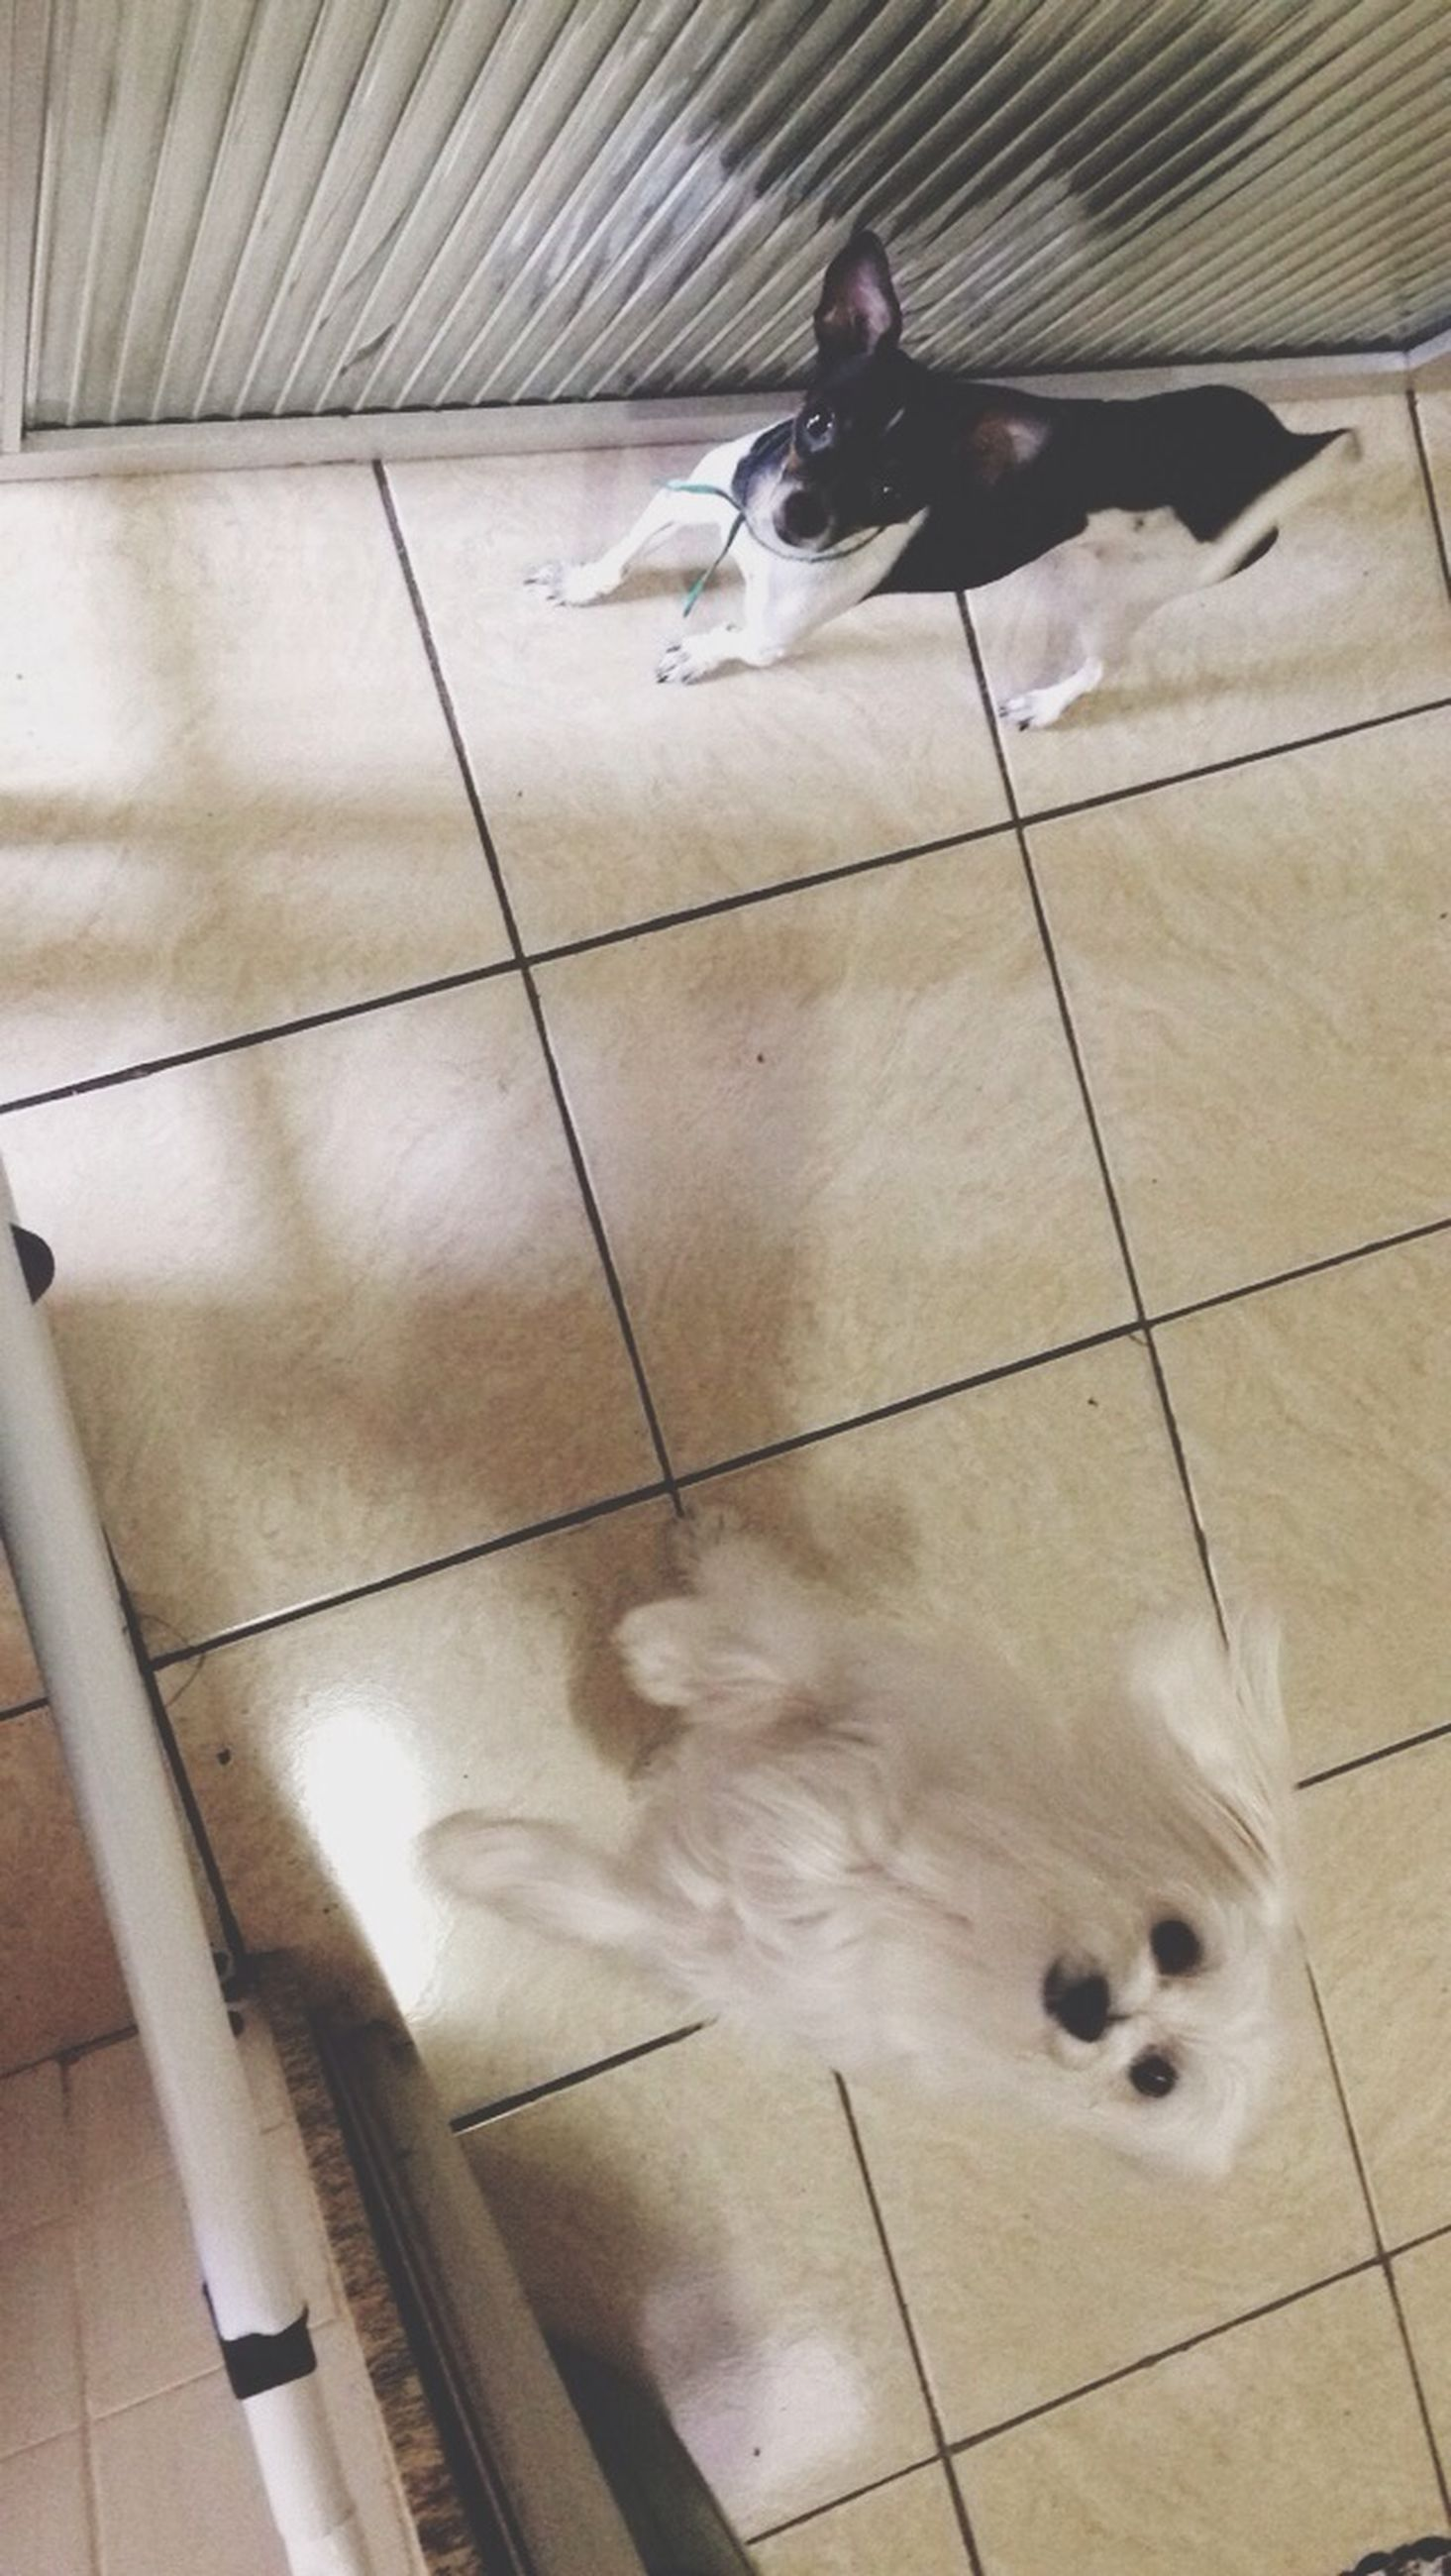 indoors, animal themes, pets, domestic animals, tiled floor, high angle view, flooring, one animal, tile, mammal, dog, domestic cat, full length, cat, floor, reflection, white color, bird, no people, hardwood floor